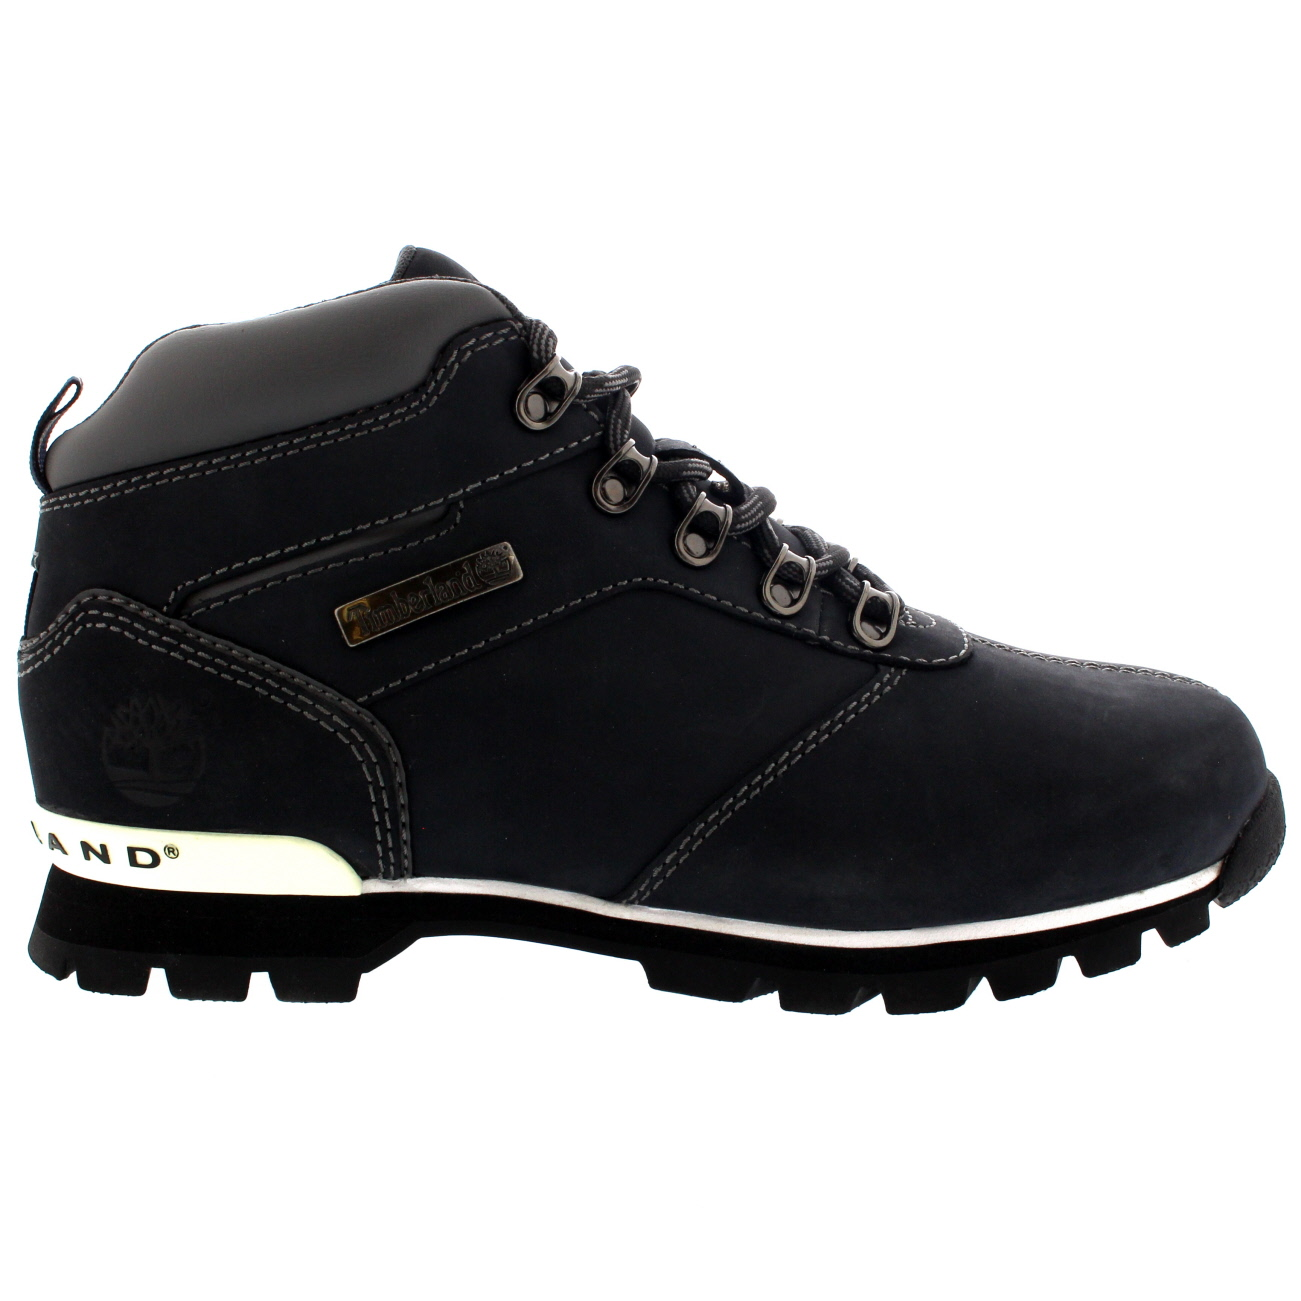 Details about Mens Timberland Splitrock 2 Hiker Winter Hiking Walking Ankle Boots All Sizes